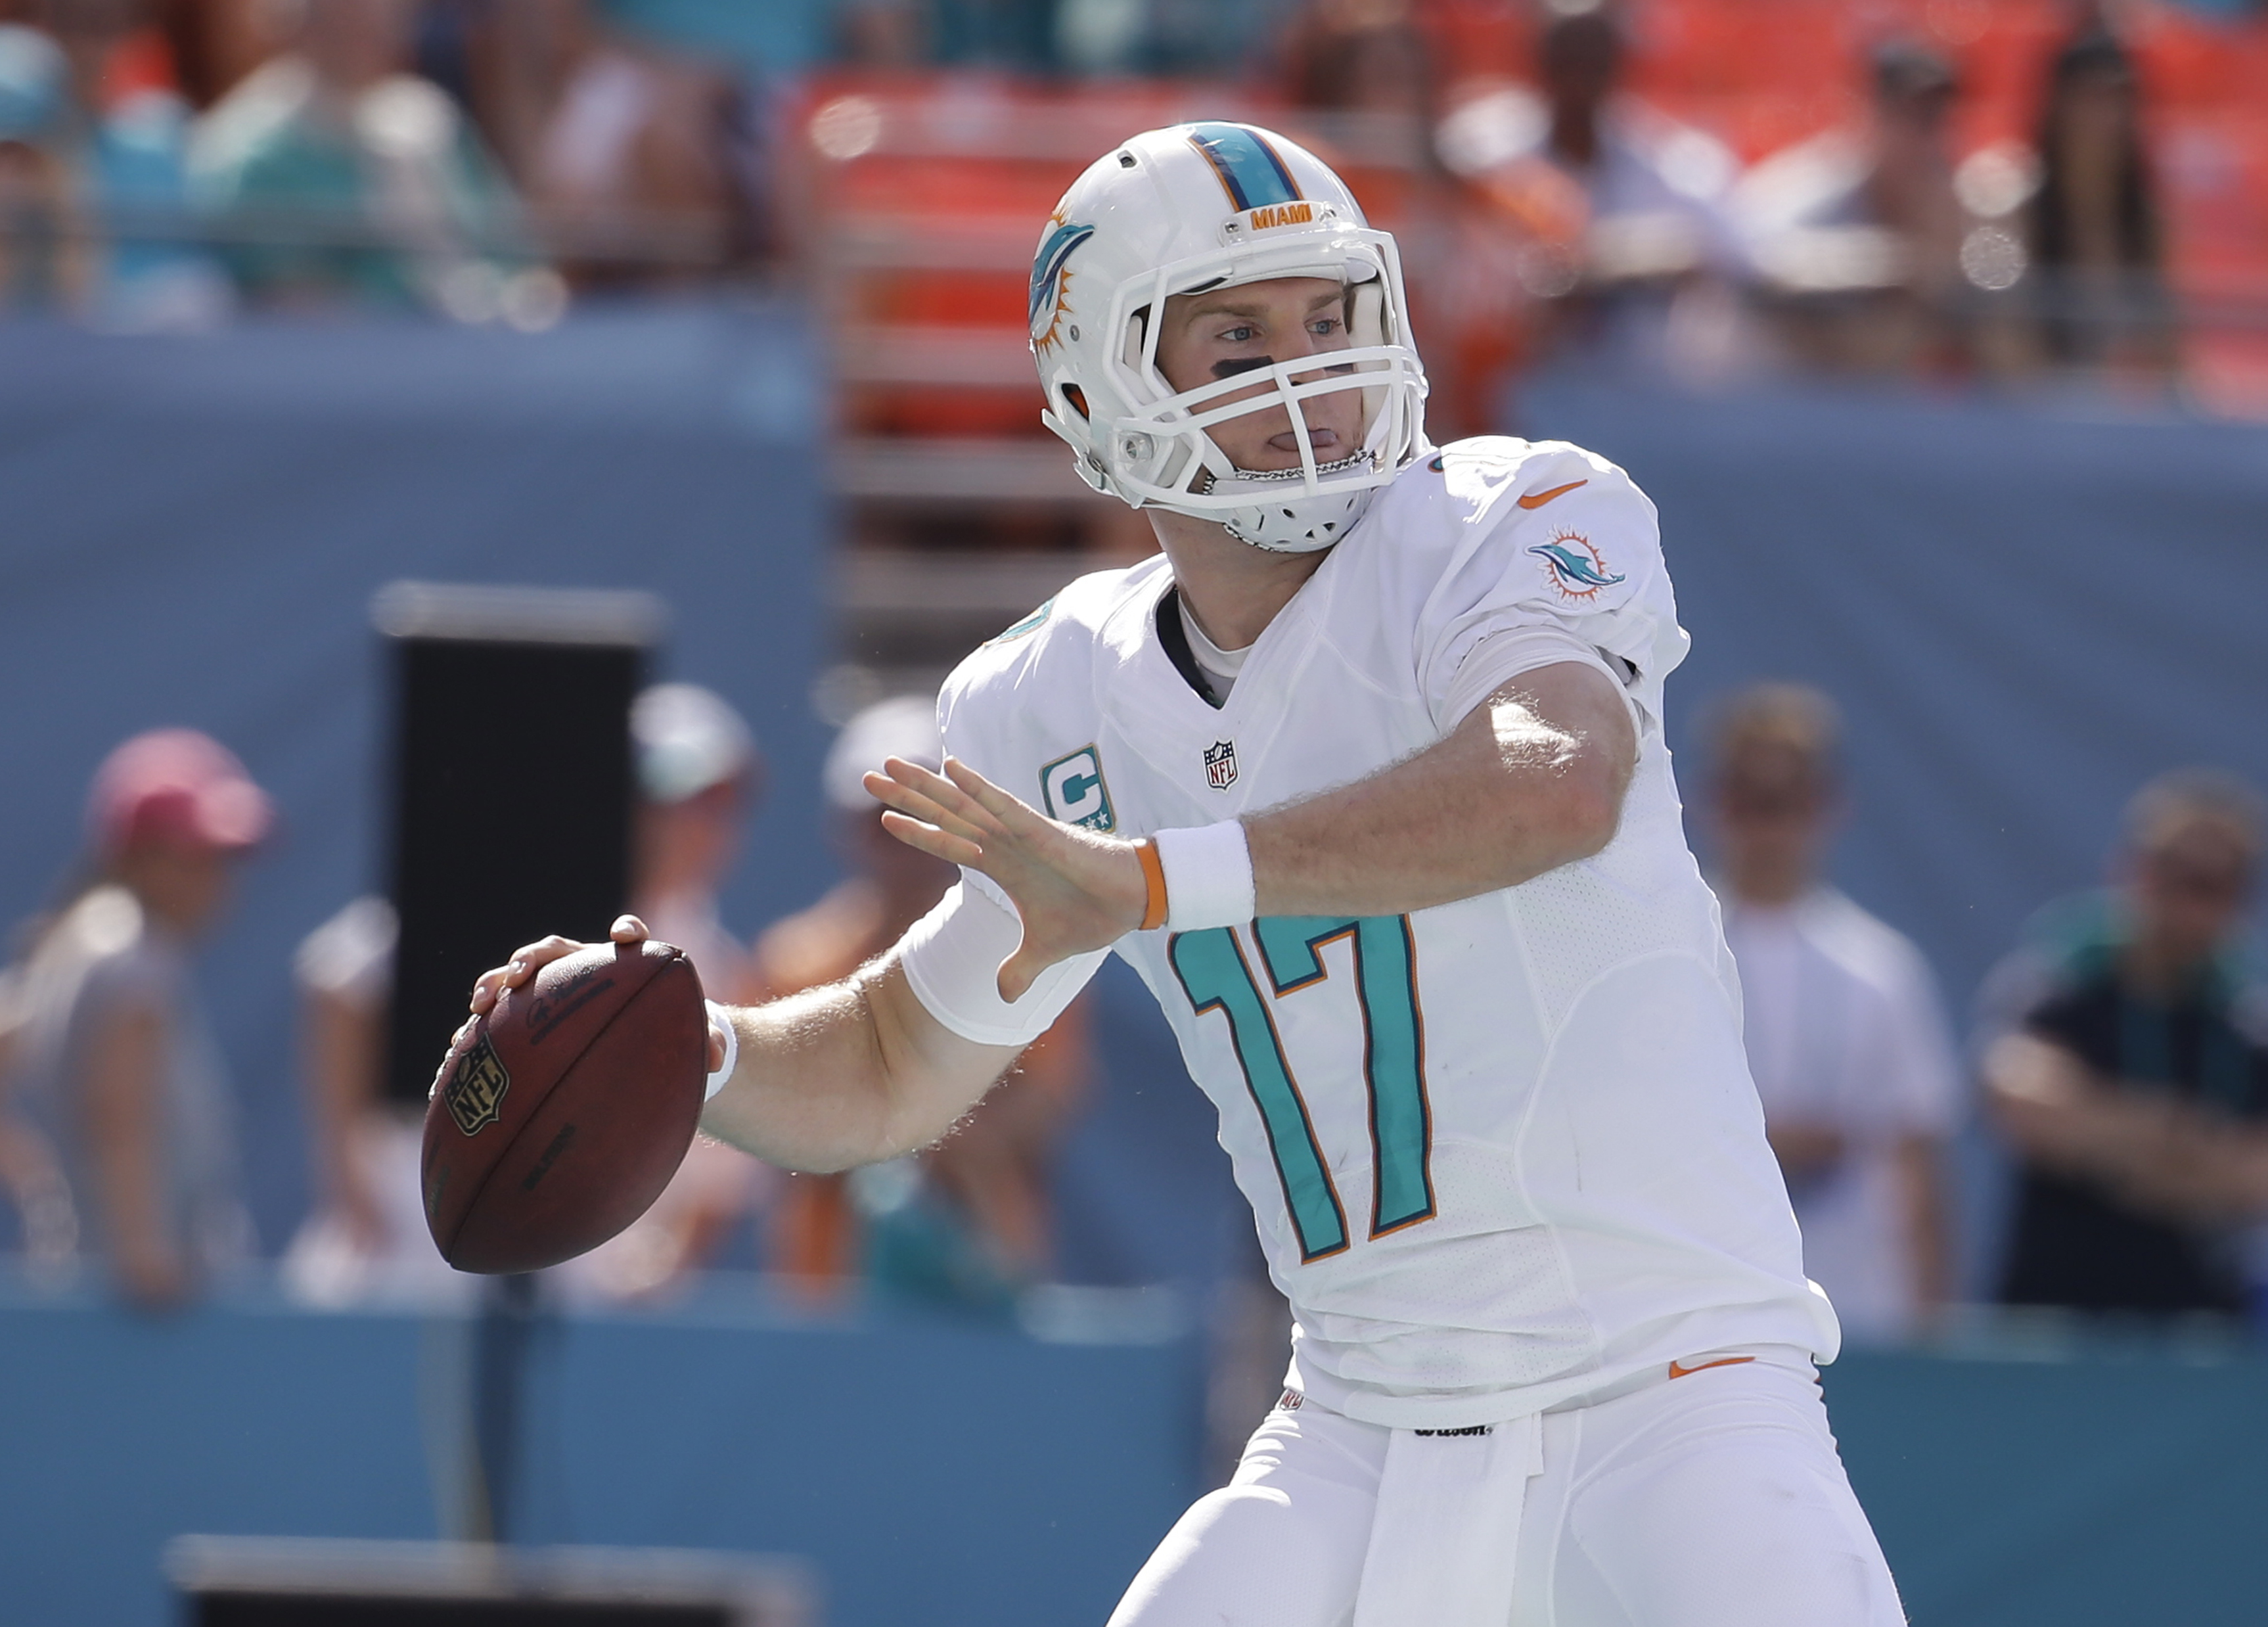 Miami Dolphins quarterback Ryan Tannehill (17) looks to pass during the first half of an NFL football game against the New York Jets, Sunday, Dec. 28, 2014, in Miami Gardens, Fla. (AP Photo/Lynne Sladky)